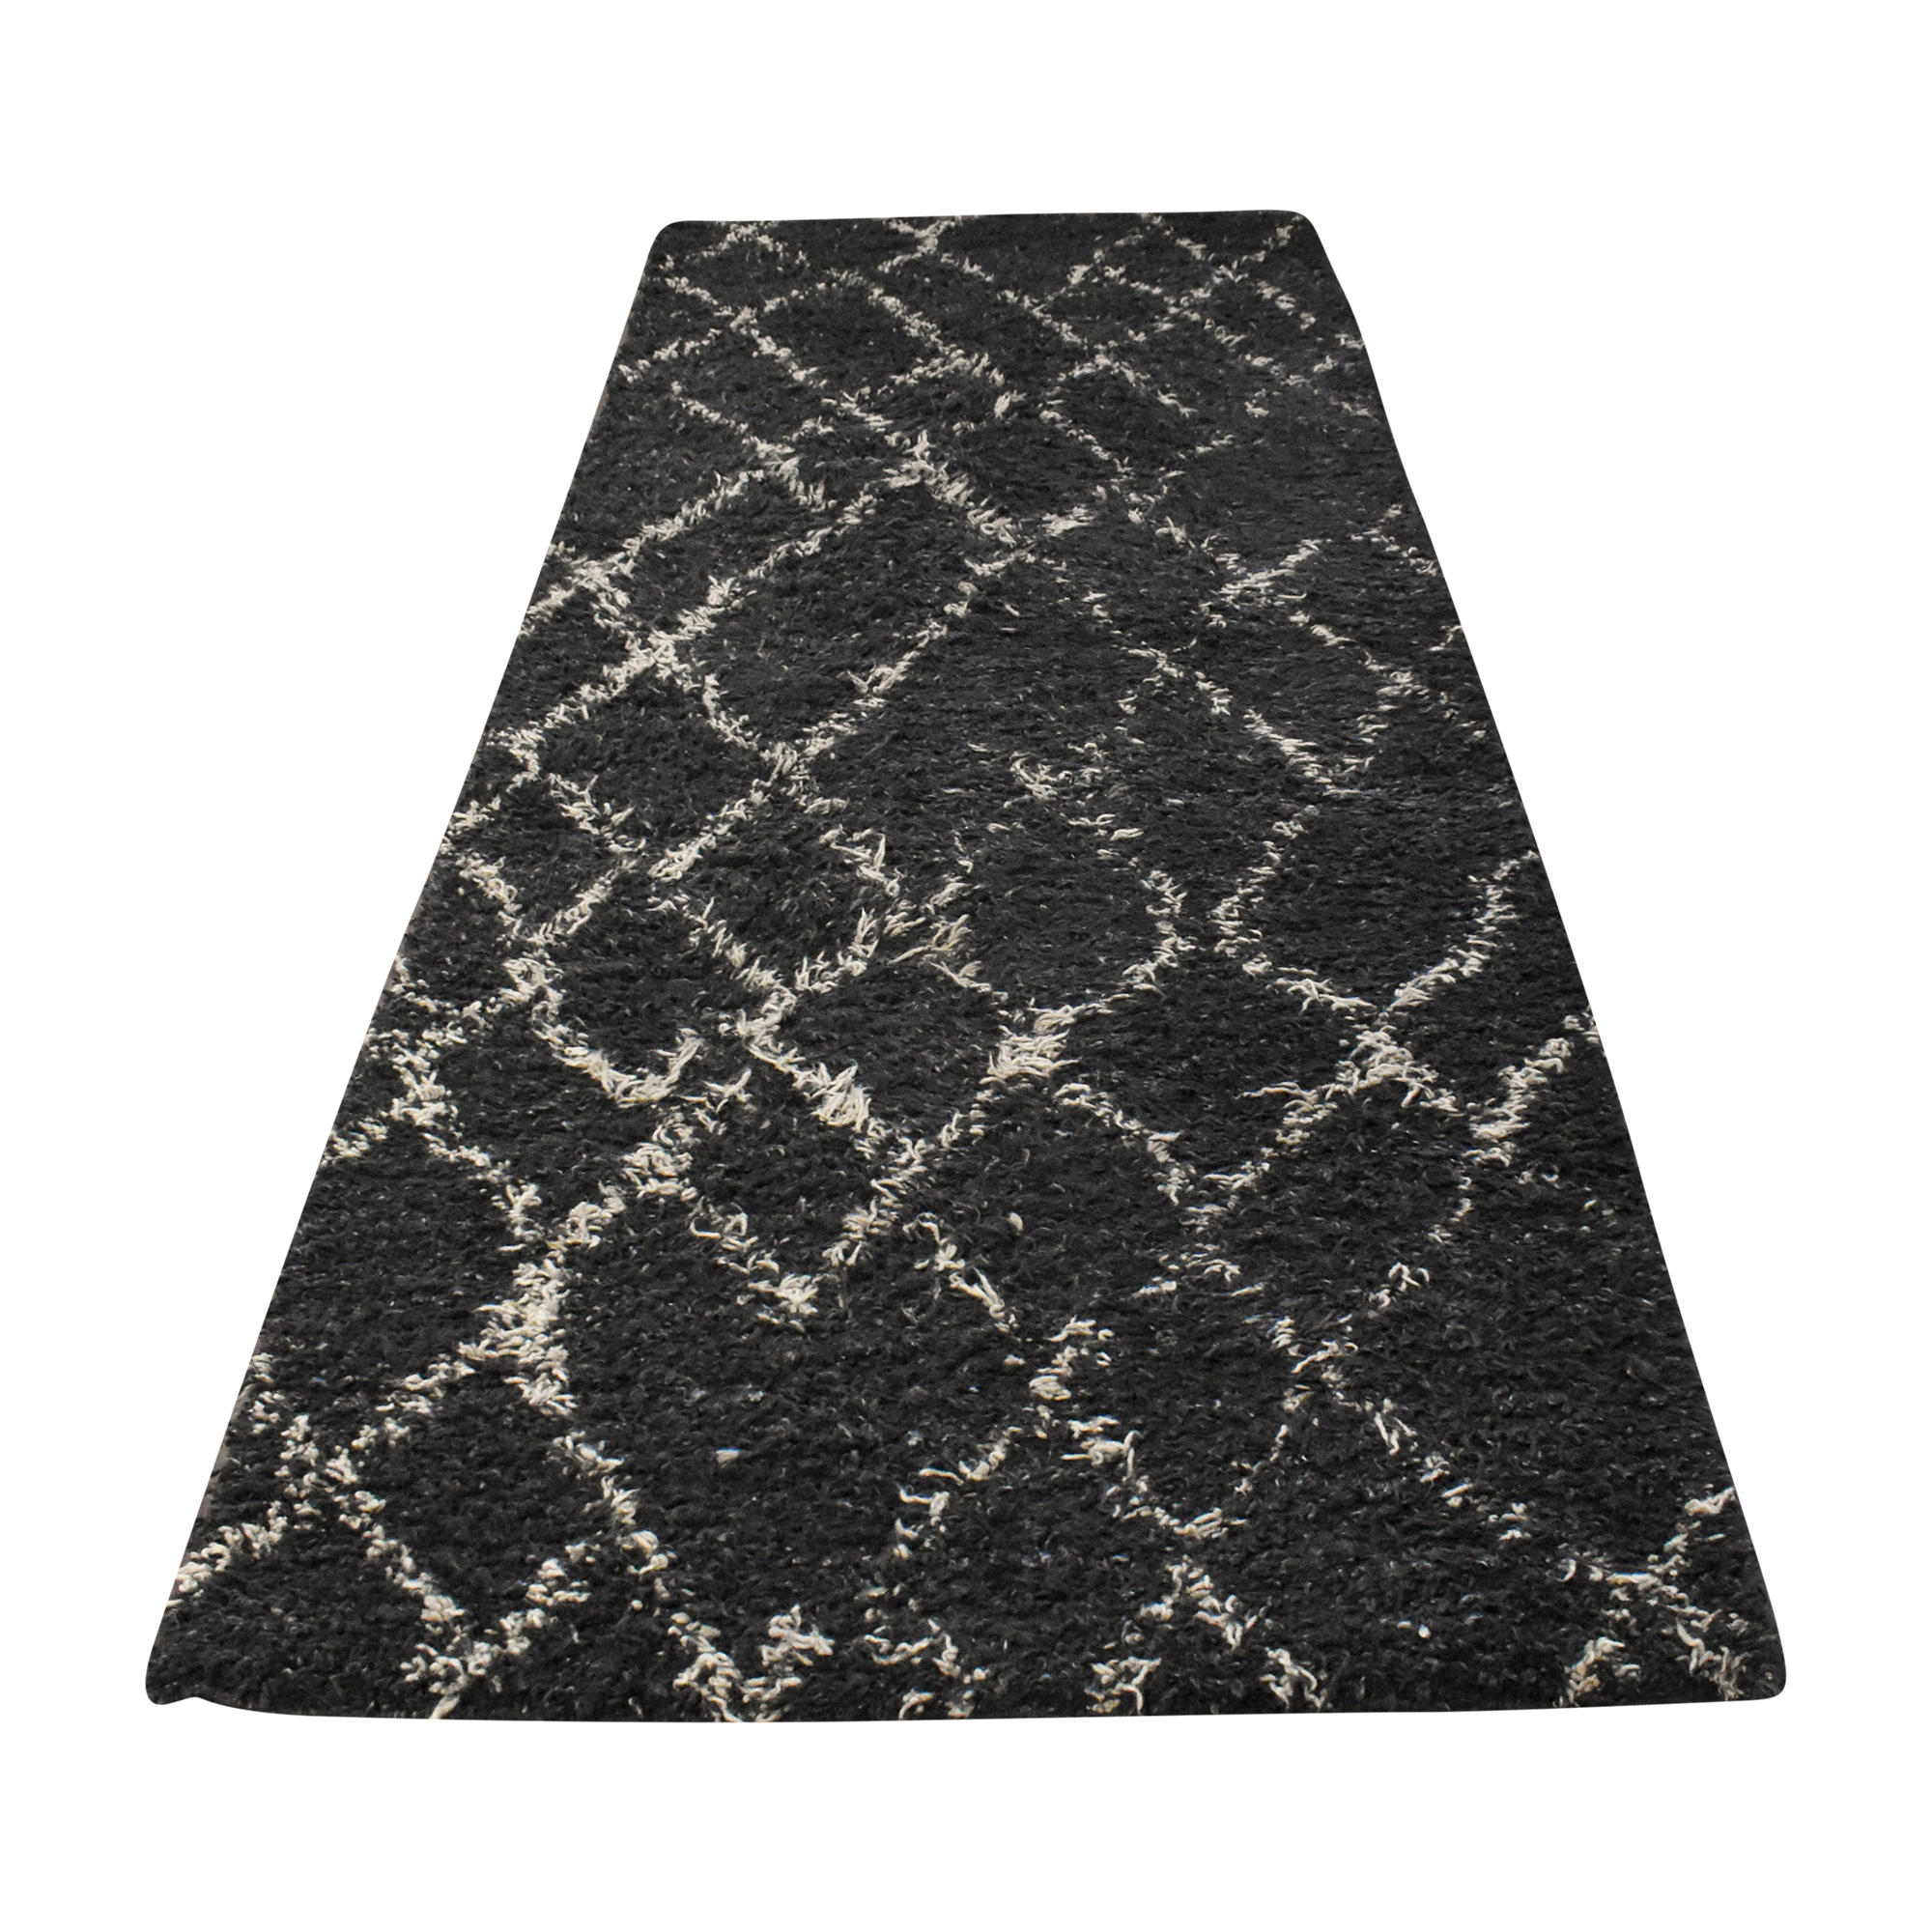 Restoration Hardware Restoration Hardware Ben Soleimani Patterned Area Rug pa